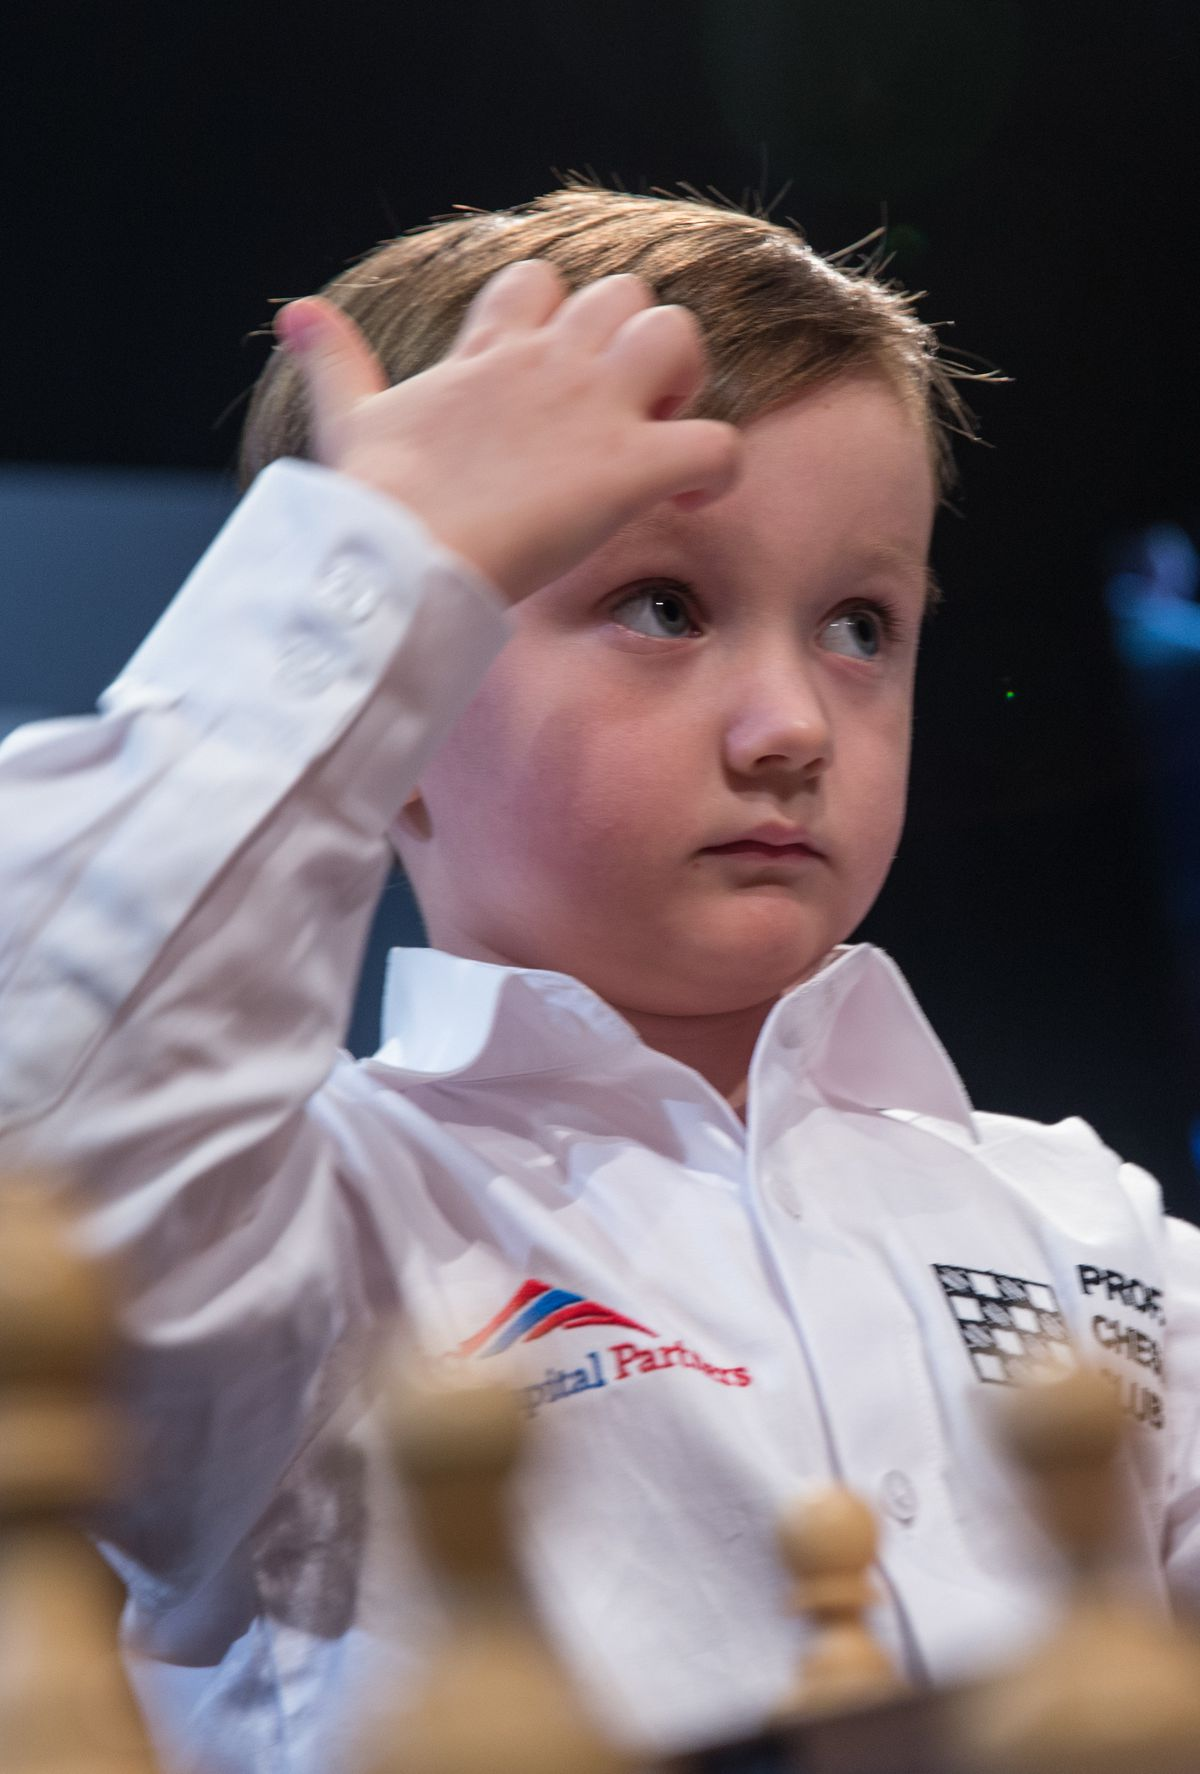 3.5 year old boy playing chess